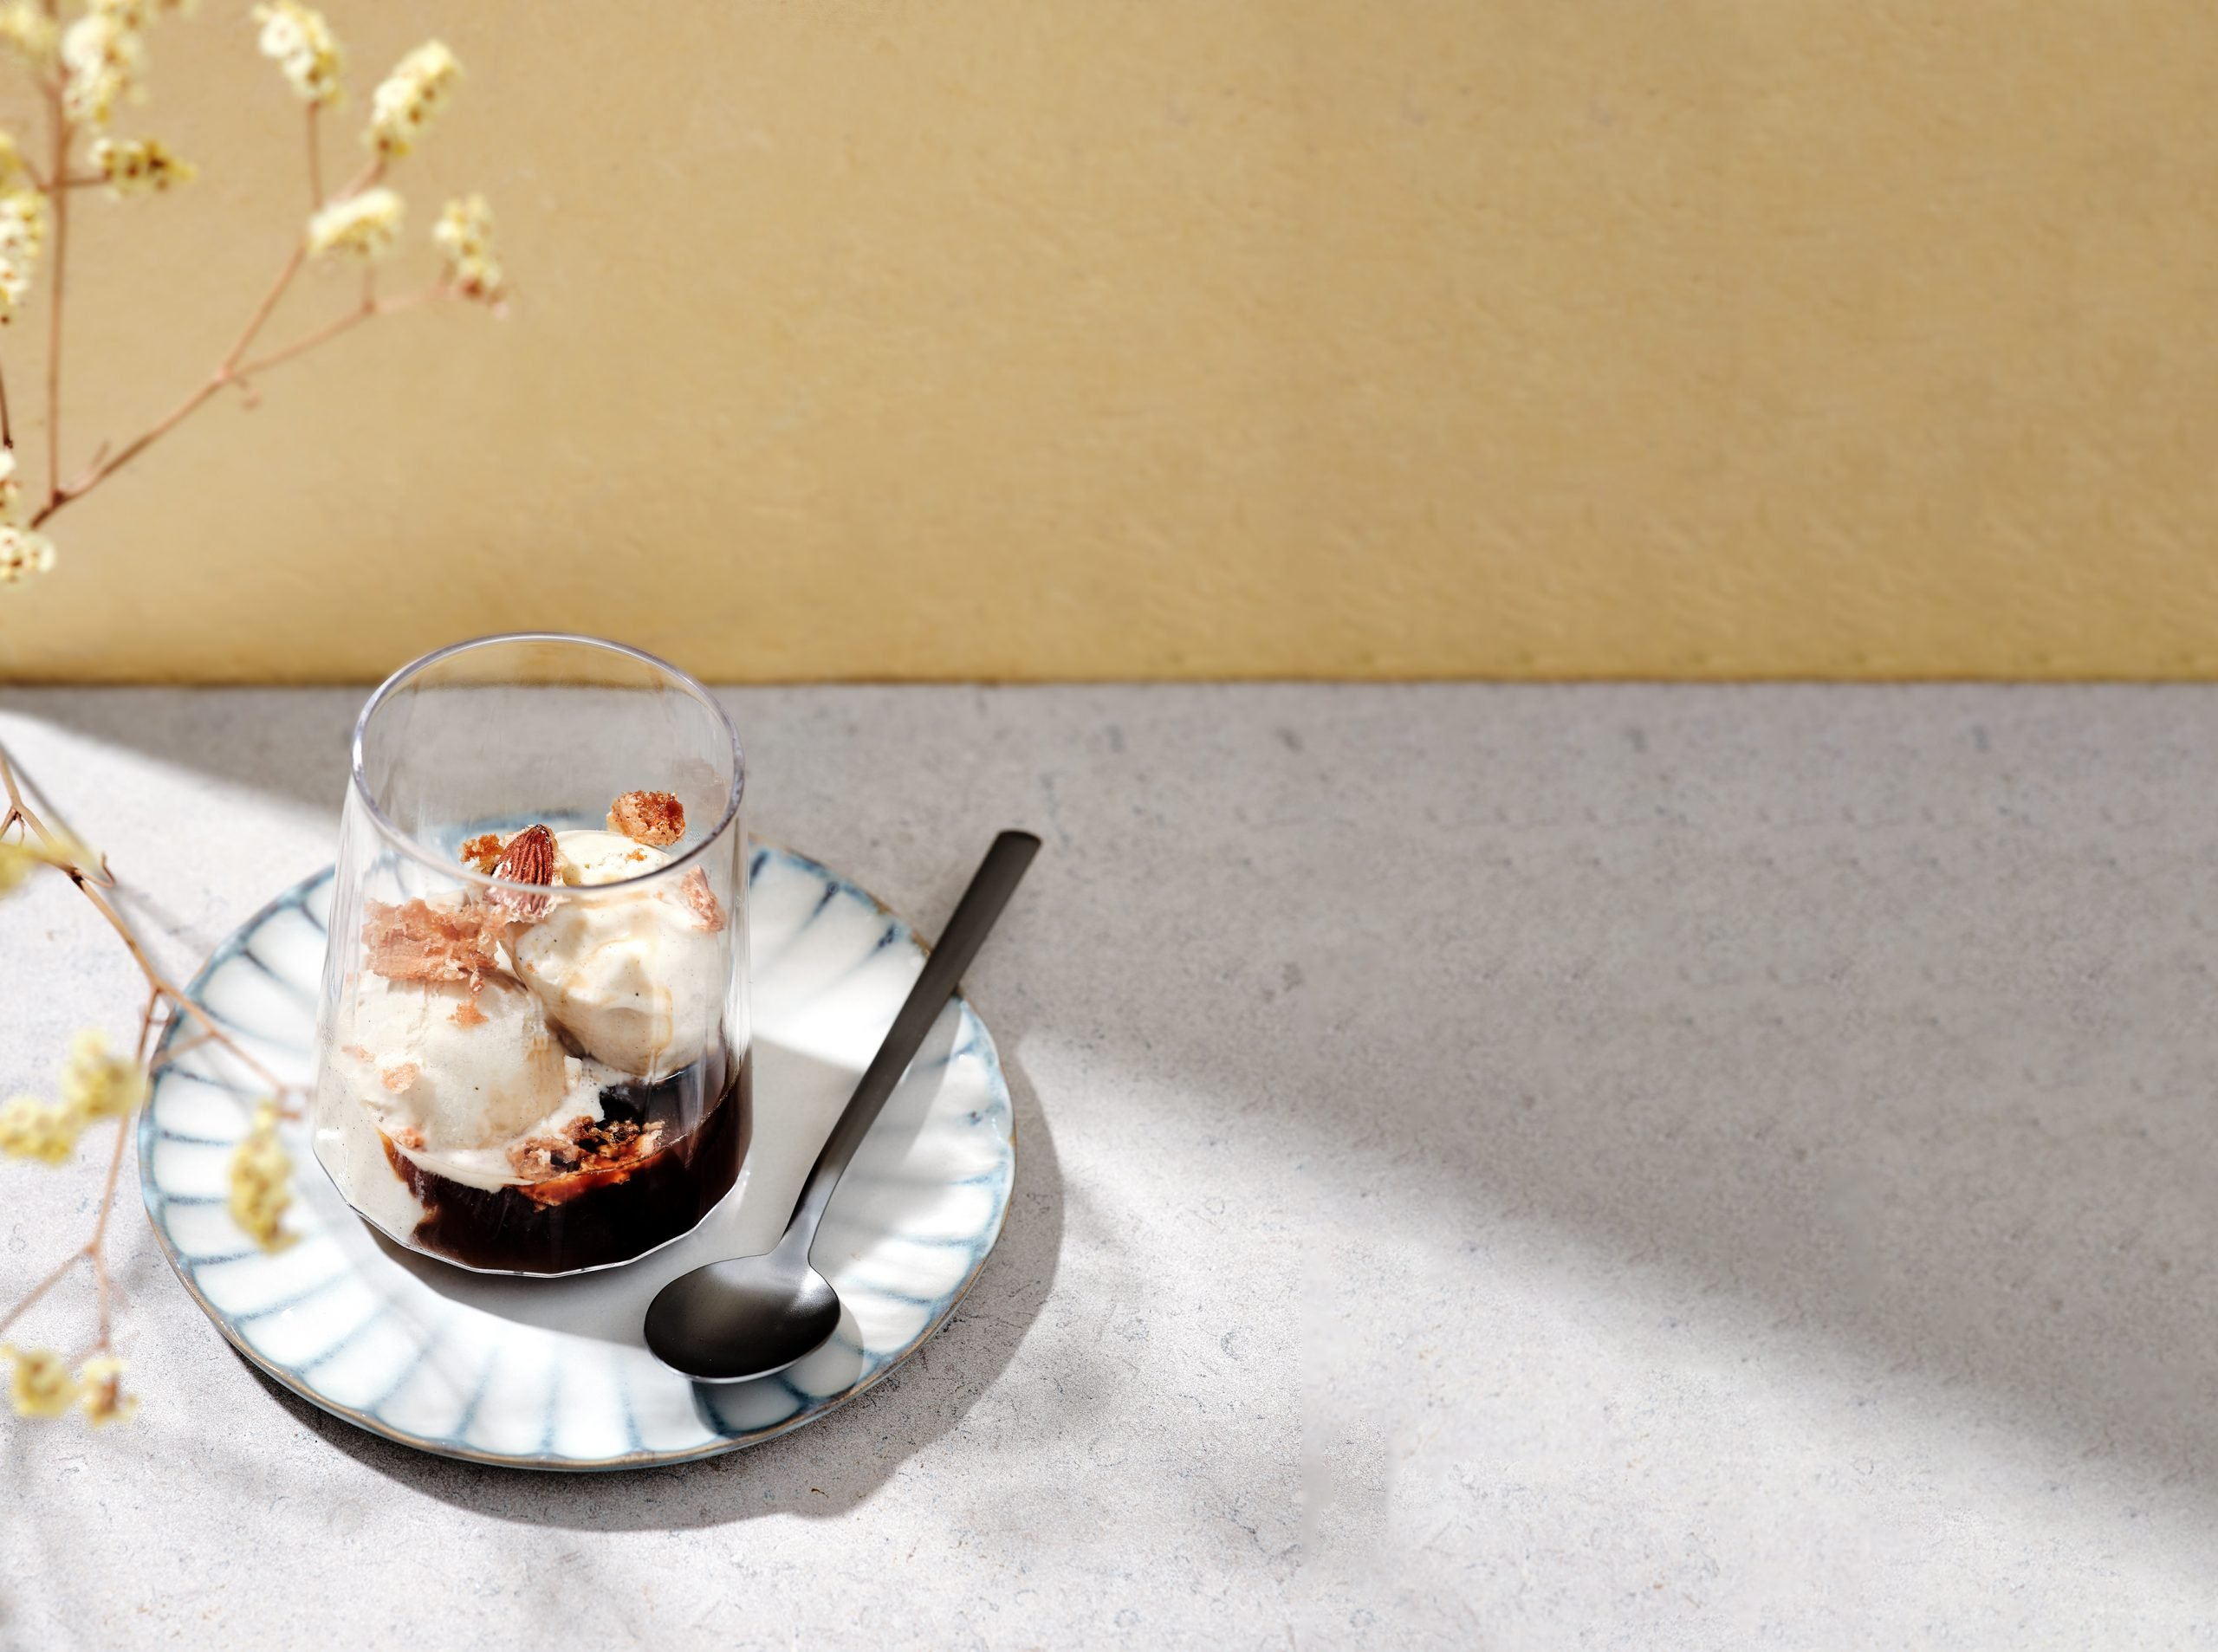 Bruynooghe Affogato met amandel